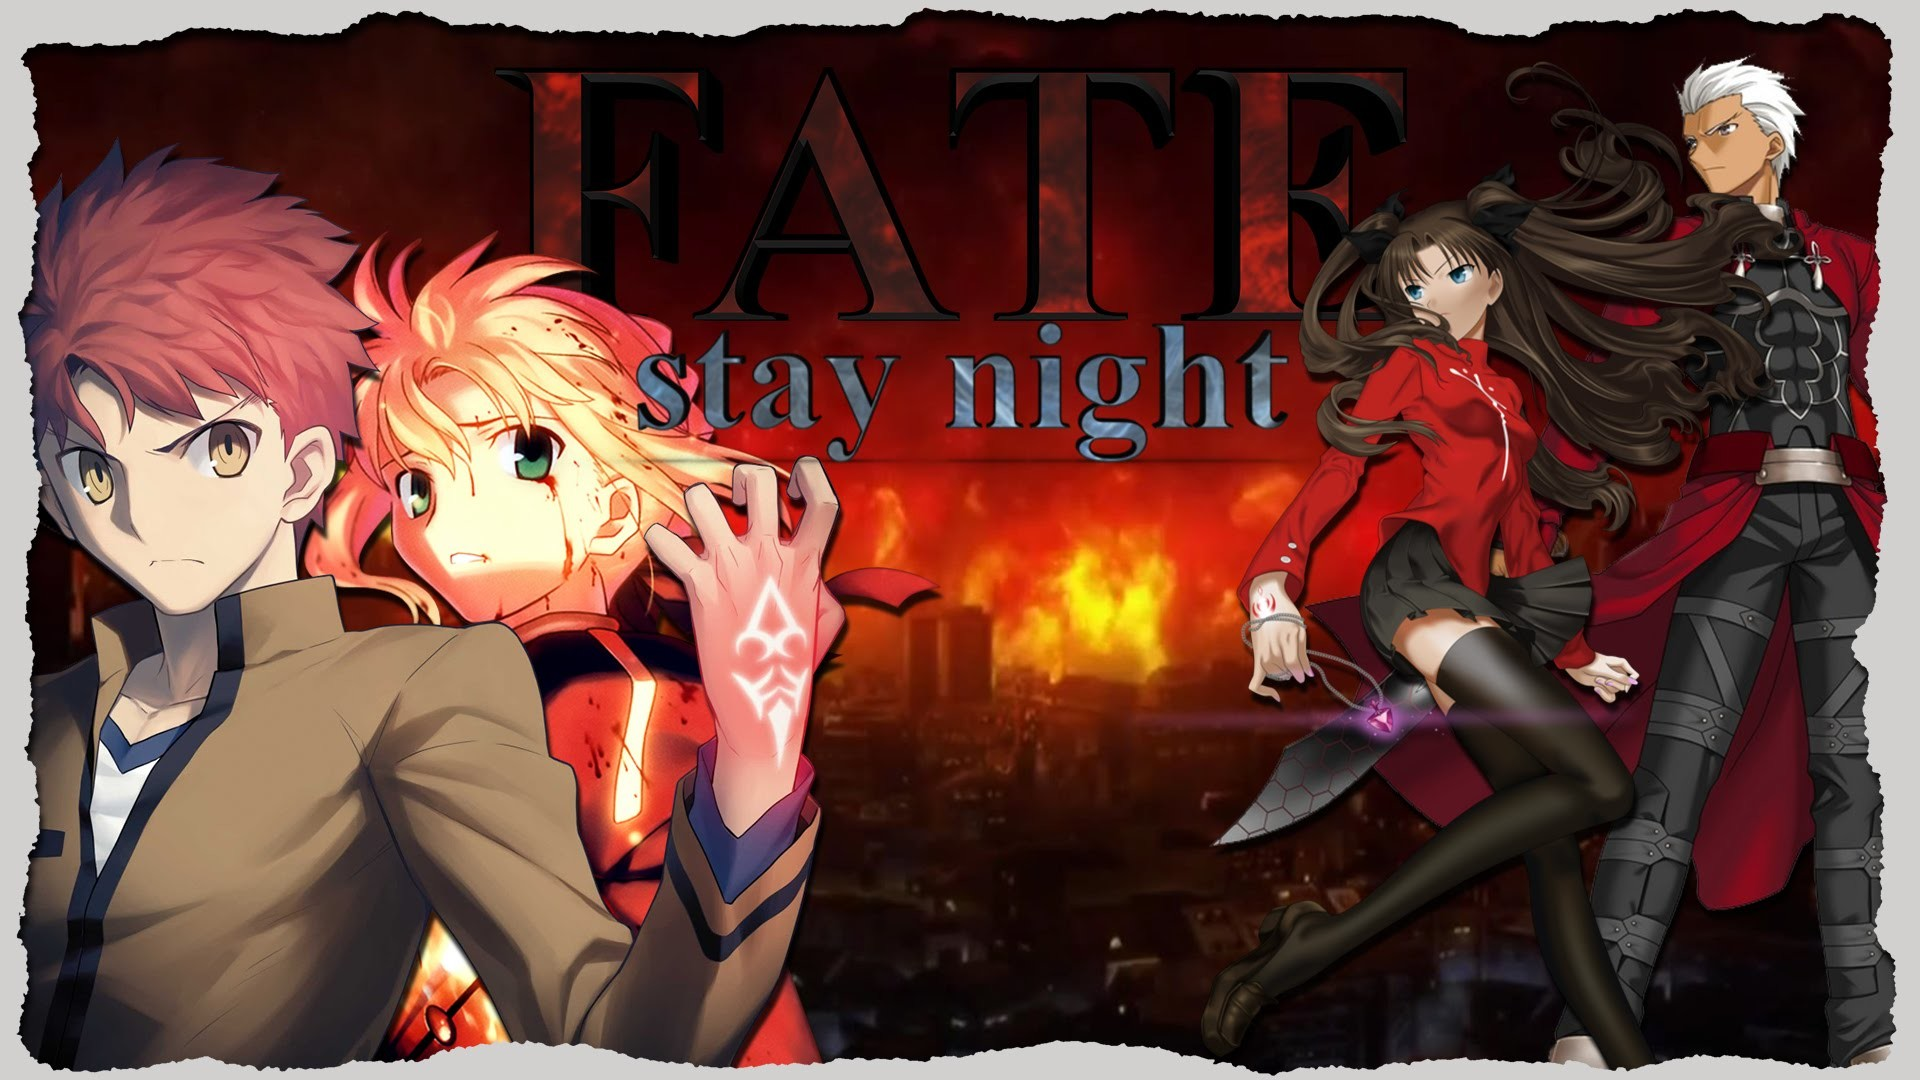 1920x1080 ☆ [AMV] ☆ Fate/stay night: Unlimited Blade Works - Crossing Fates [Part 1]  - YouTube